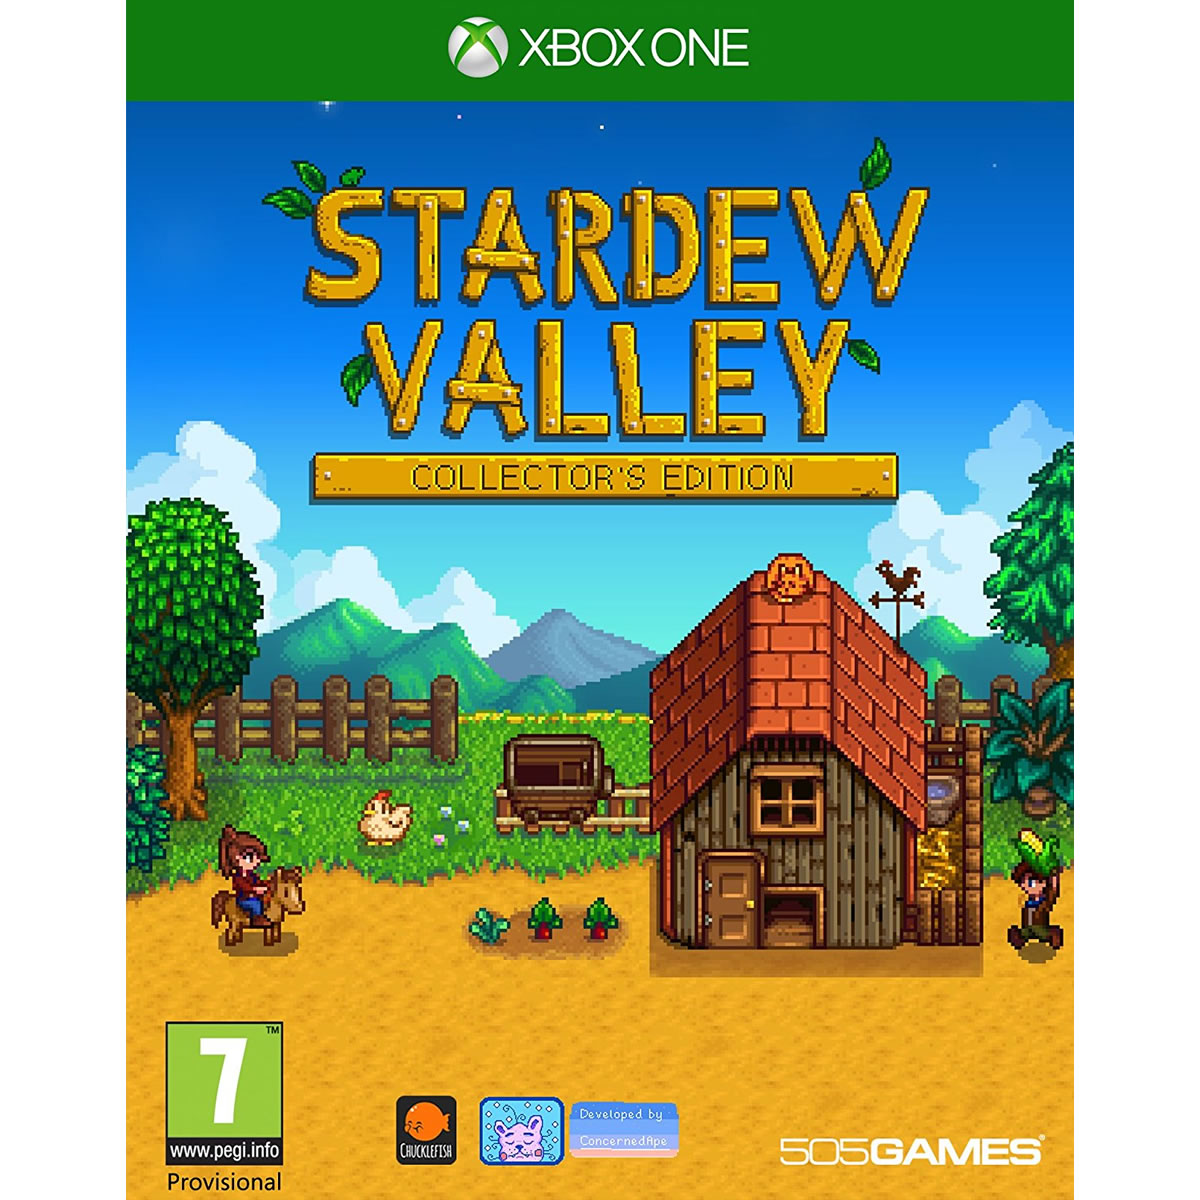 STARDEW VALLEY - Collector's Edition (XBOX ONE)